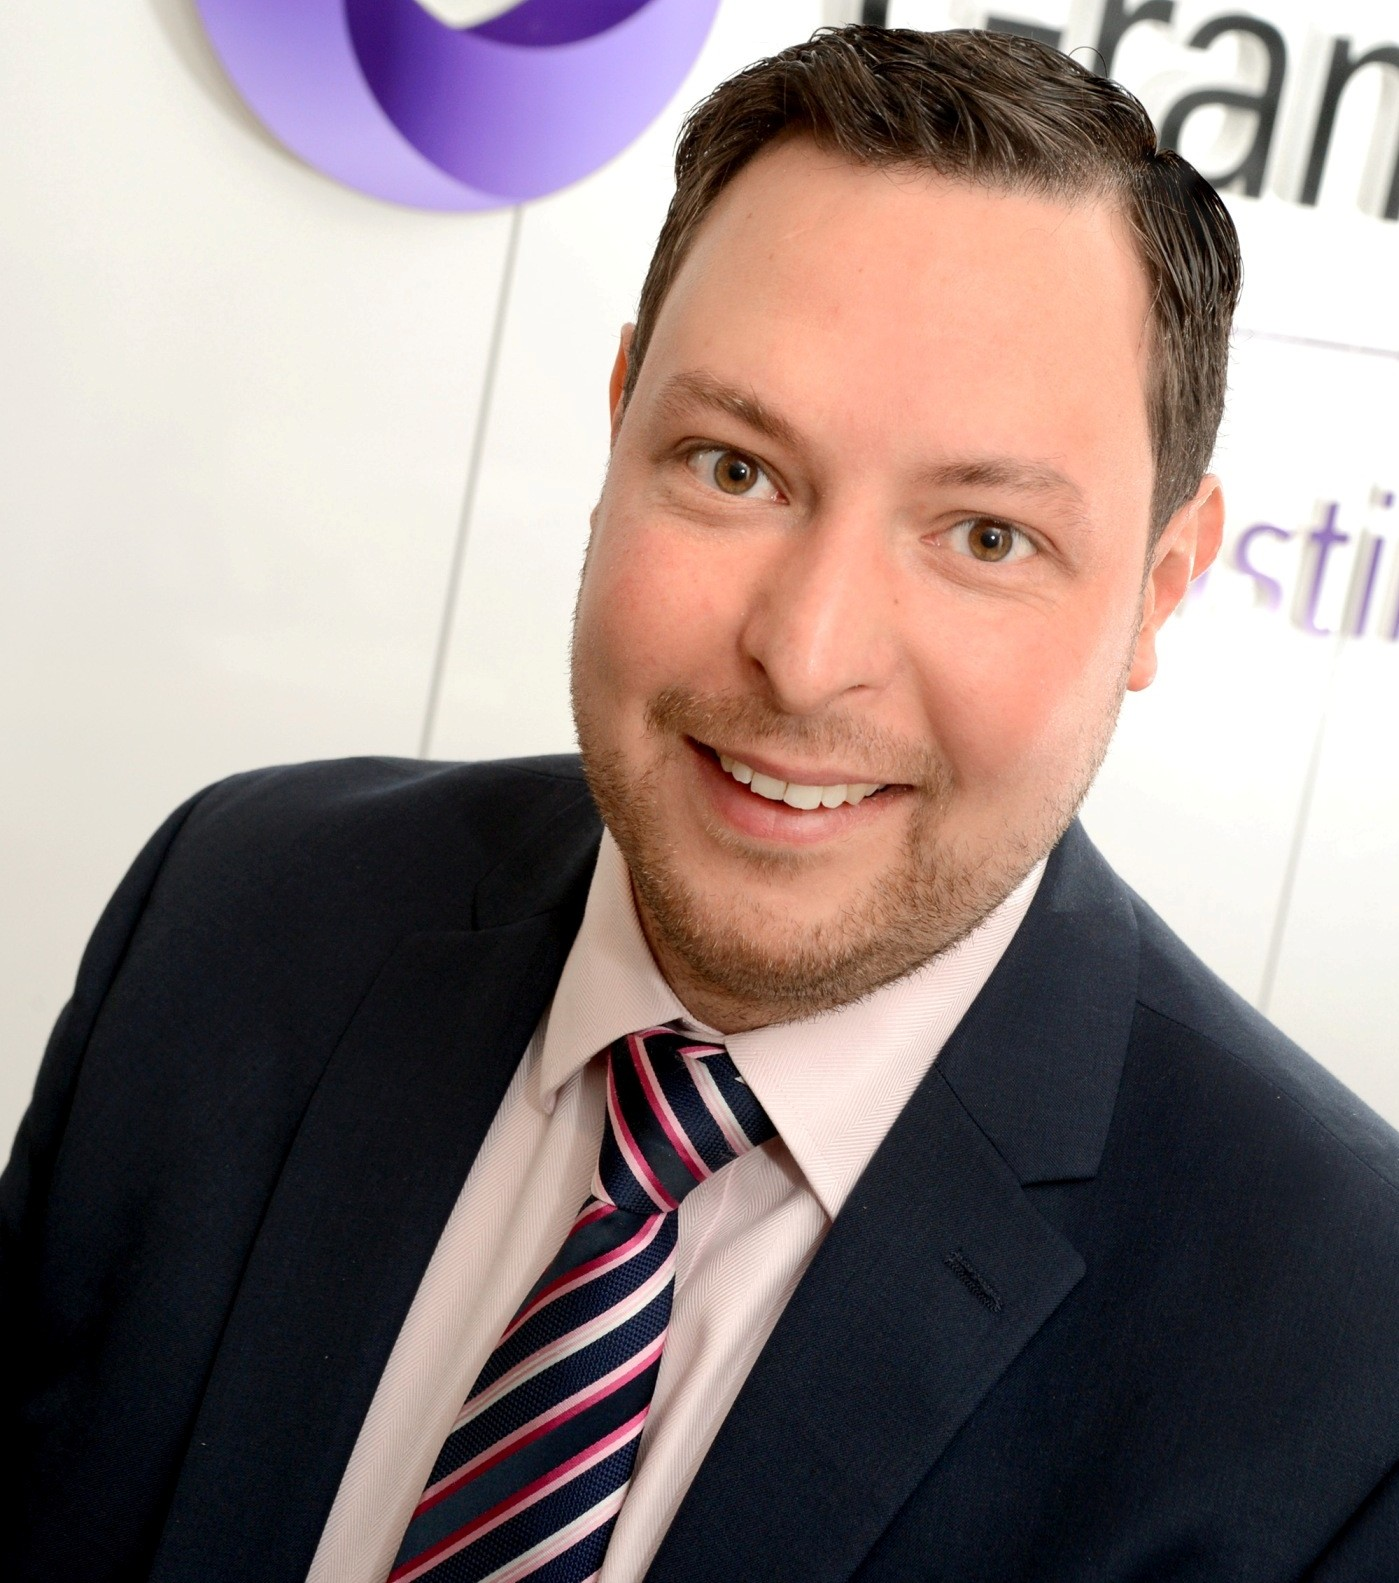 East Midlands businesses set to create more jobs in 2016